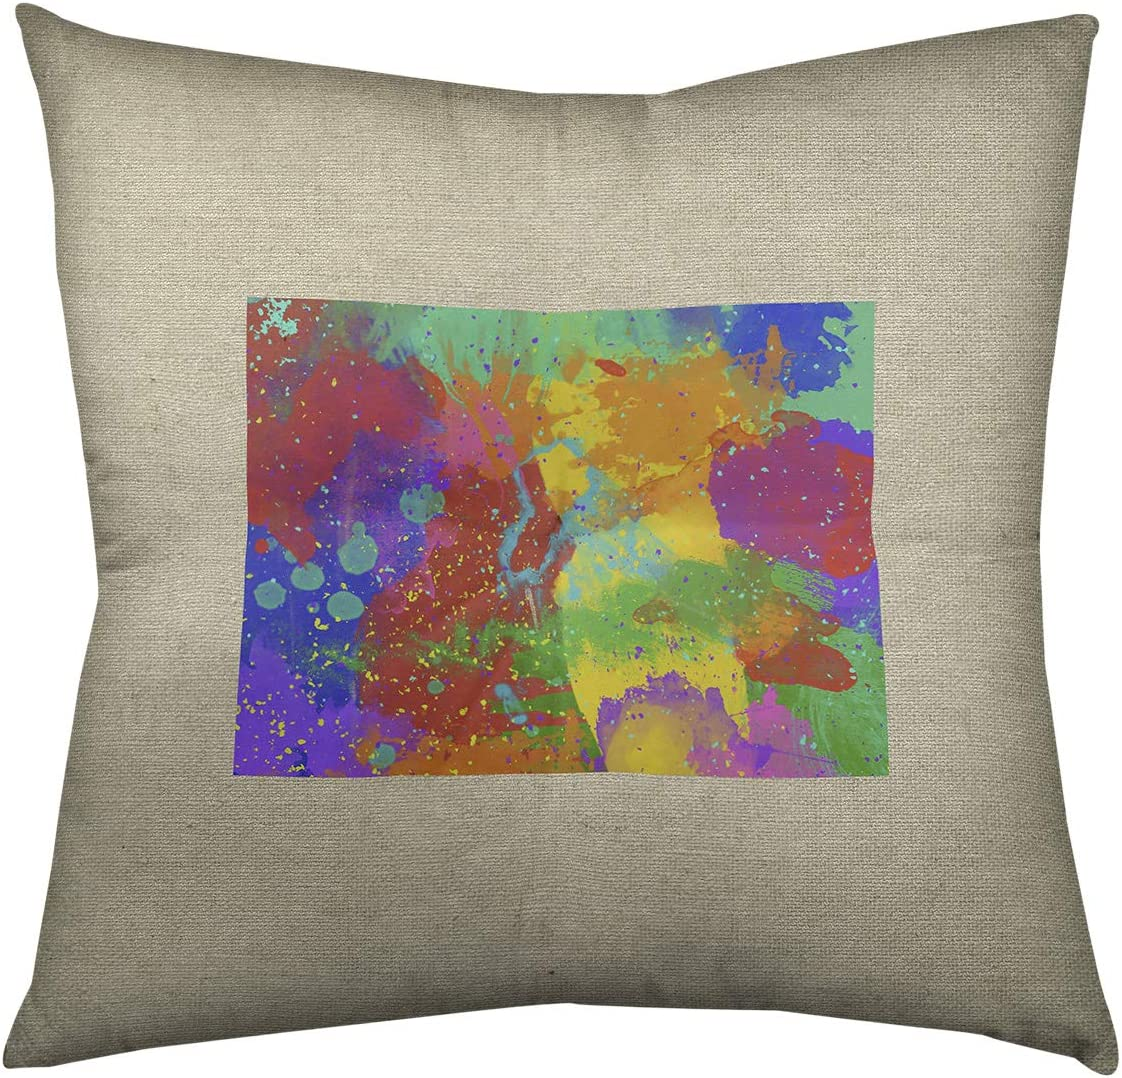 ArtVerse Katelyn Smith 26 x 26 Spun Polyester Double Sided Print with Concealed Zipper /& Insert Utah Watercolor Pillow